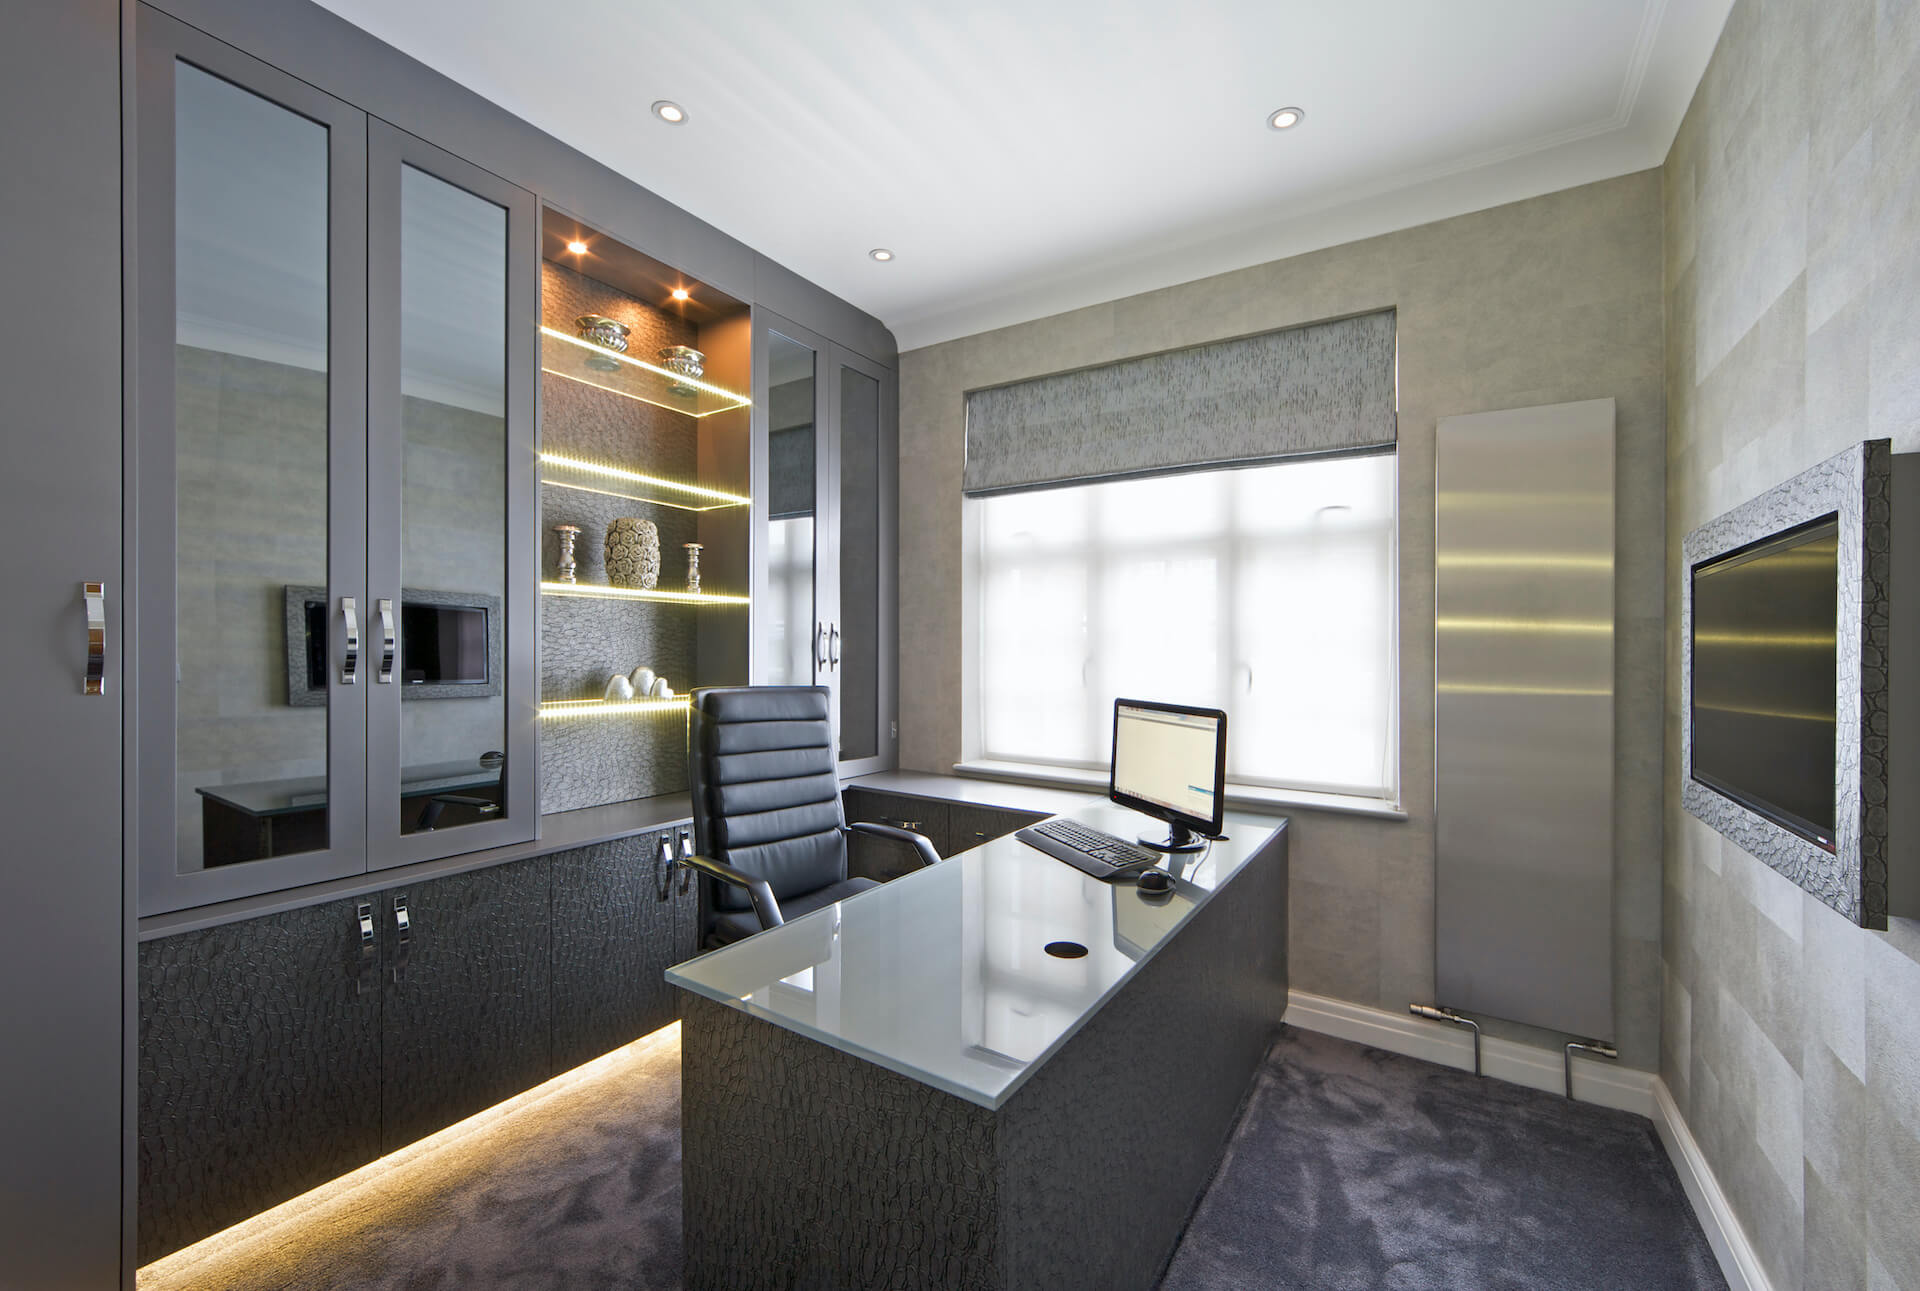 Office In A Luxury House Decorated In Tones Of Grey With Generous Use Of Grey Mock Snakeskin Leather